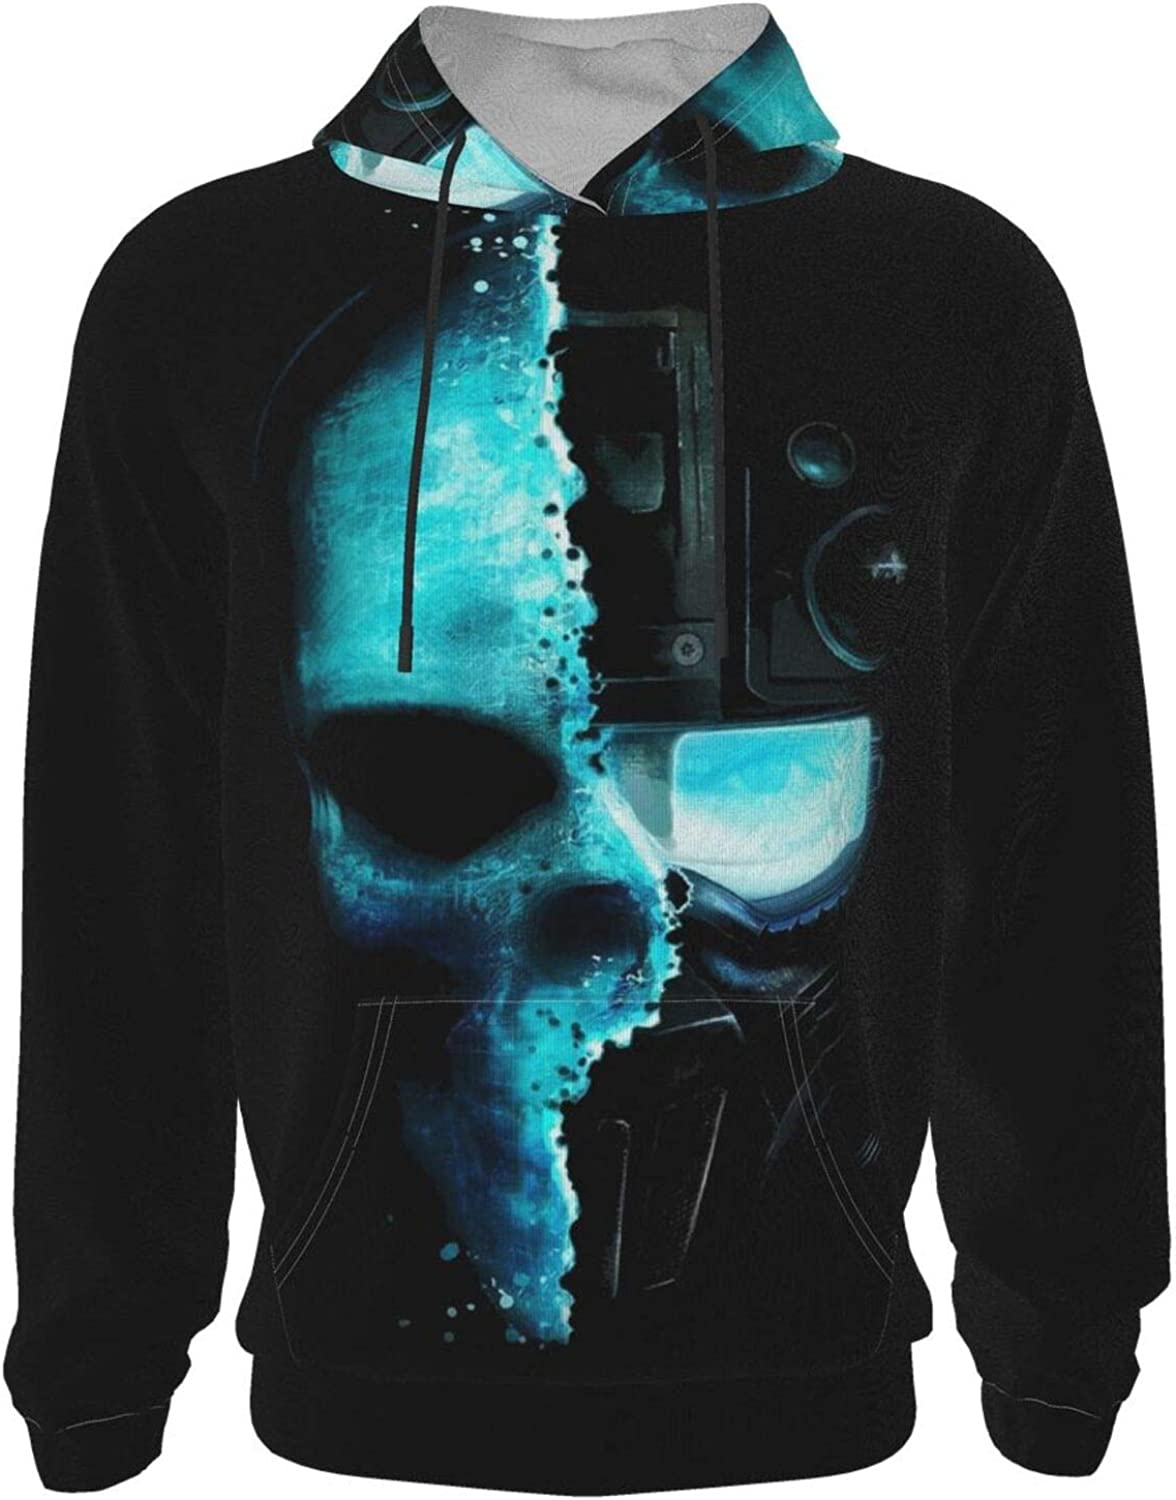 Youth C-All Of D-Uty Hoodies Pullover Link 3d Print Pattern Fashion Sweatshirt Call Of Duty